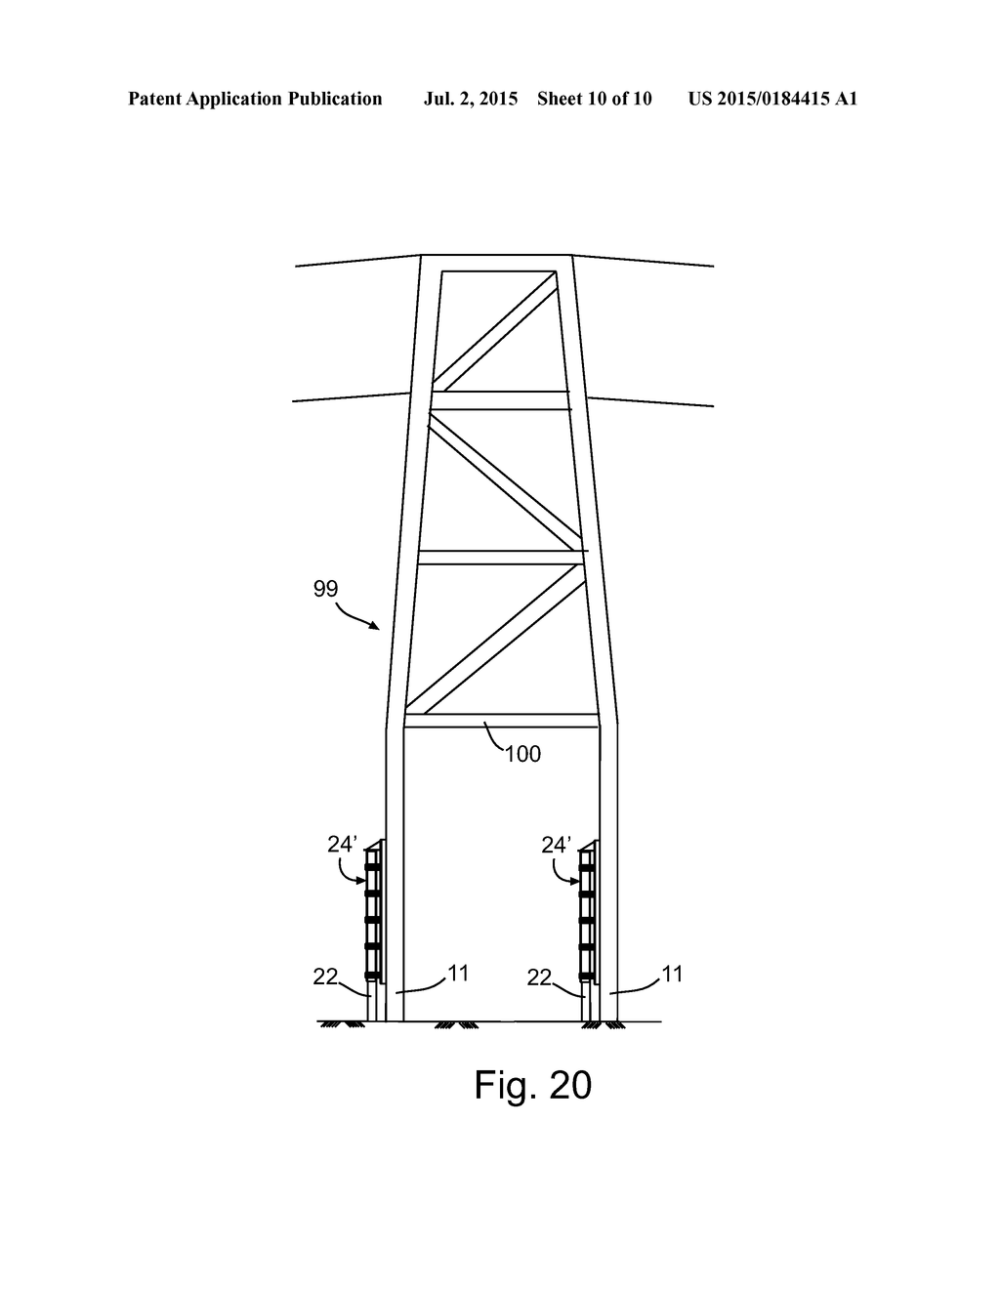 medium resolution of methods and apparatuses of supporting and bracing a utility pole diagram schematic and image 11